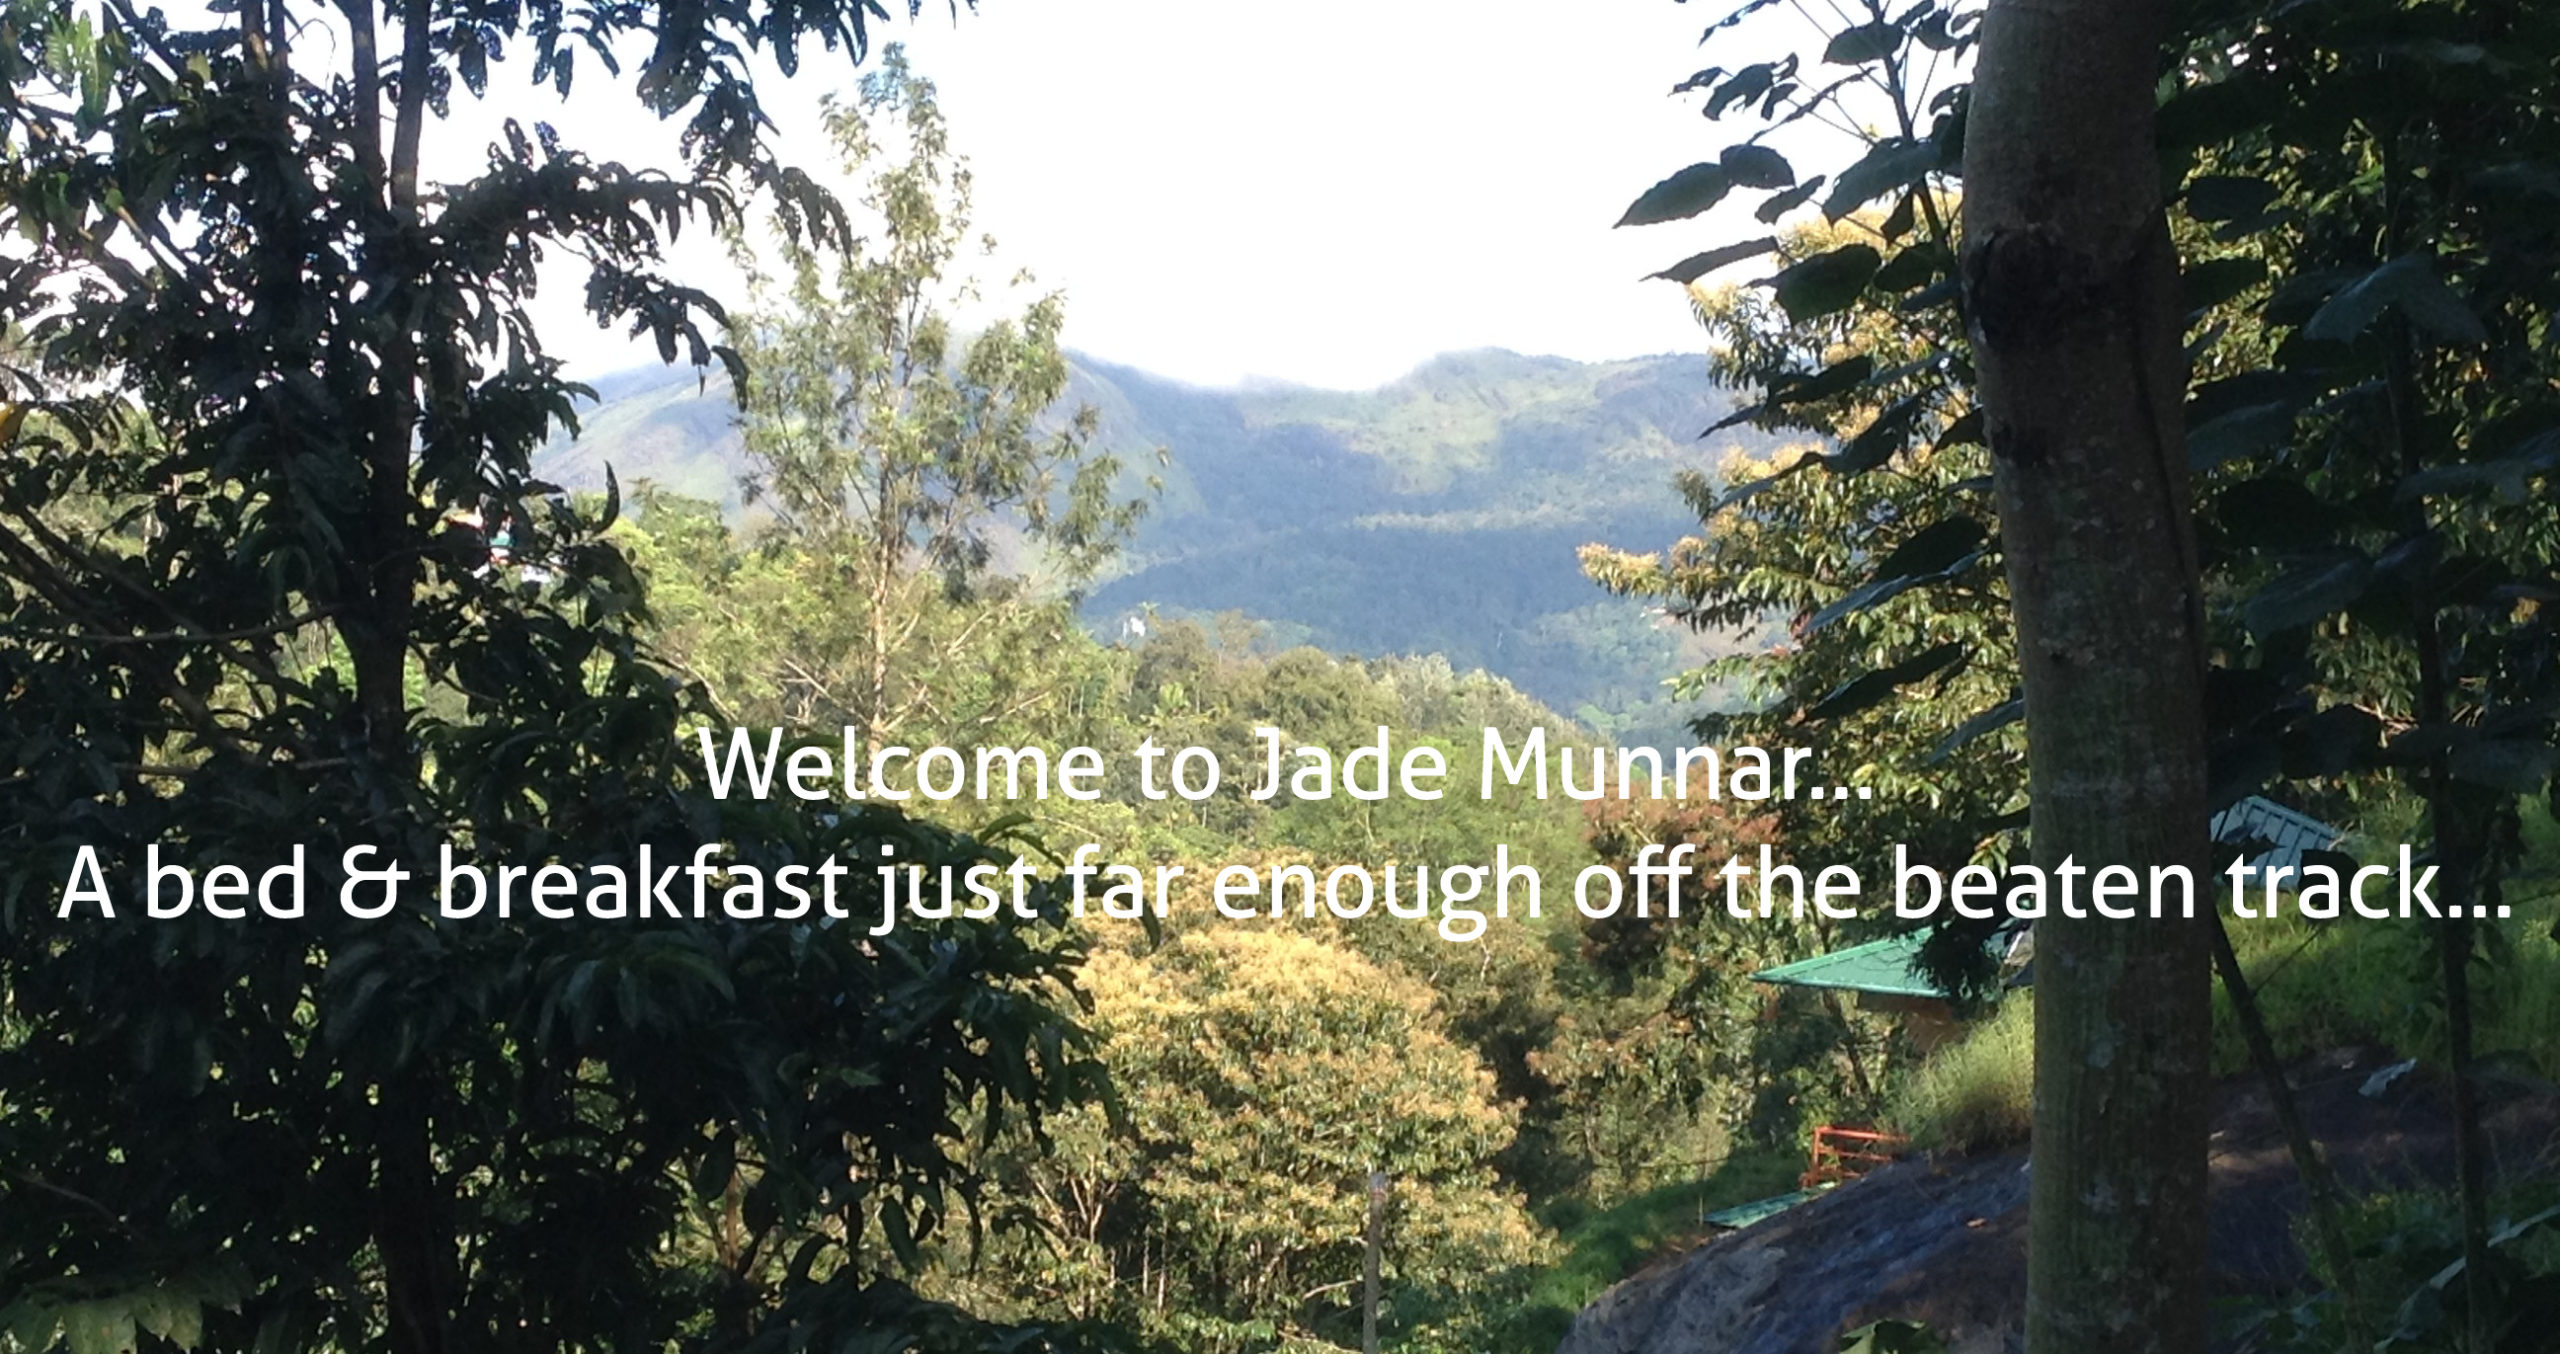 Welcome to Jade Munnar. A bed & breakfast just far enough off the beaten track